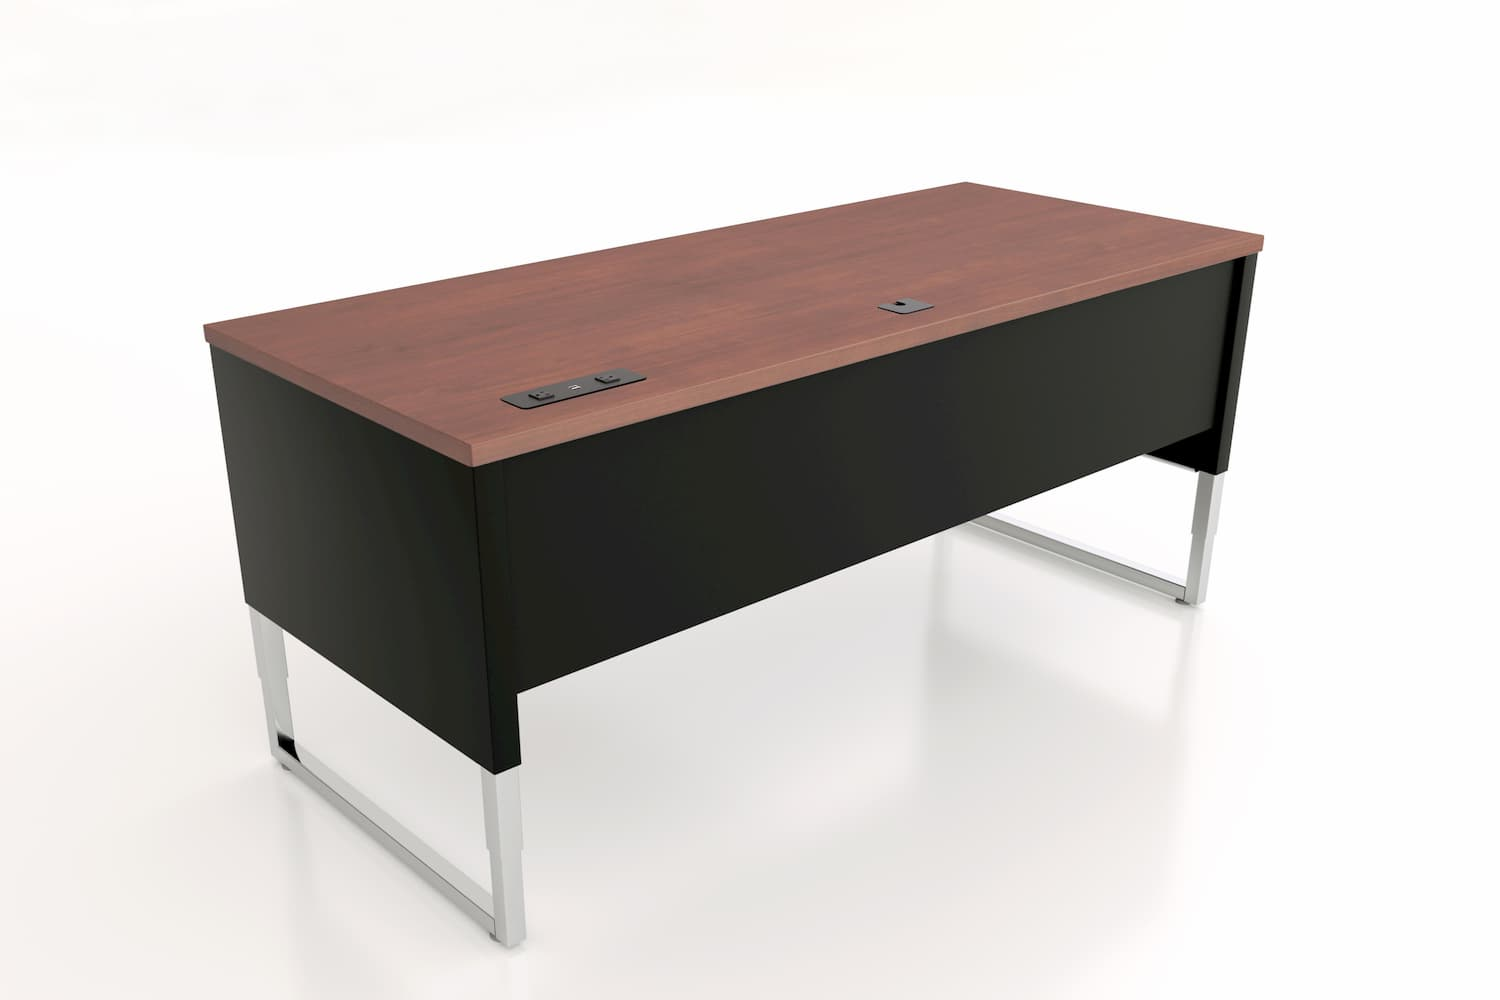 Advent-Desk-ADV-7230-BK-Custom-Top-10-Back